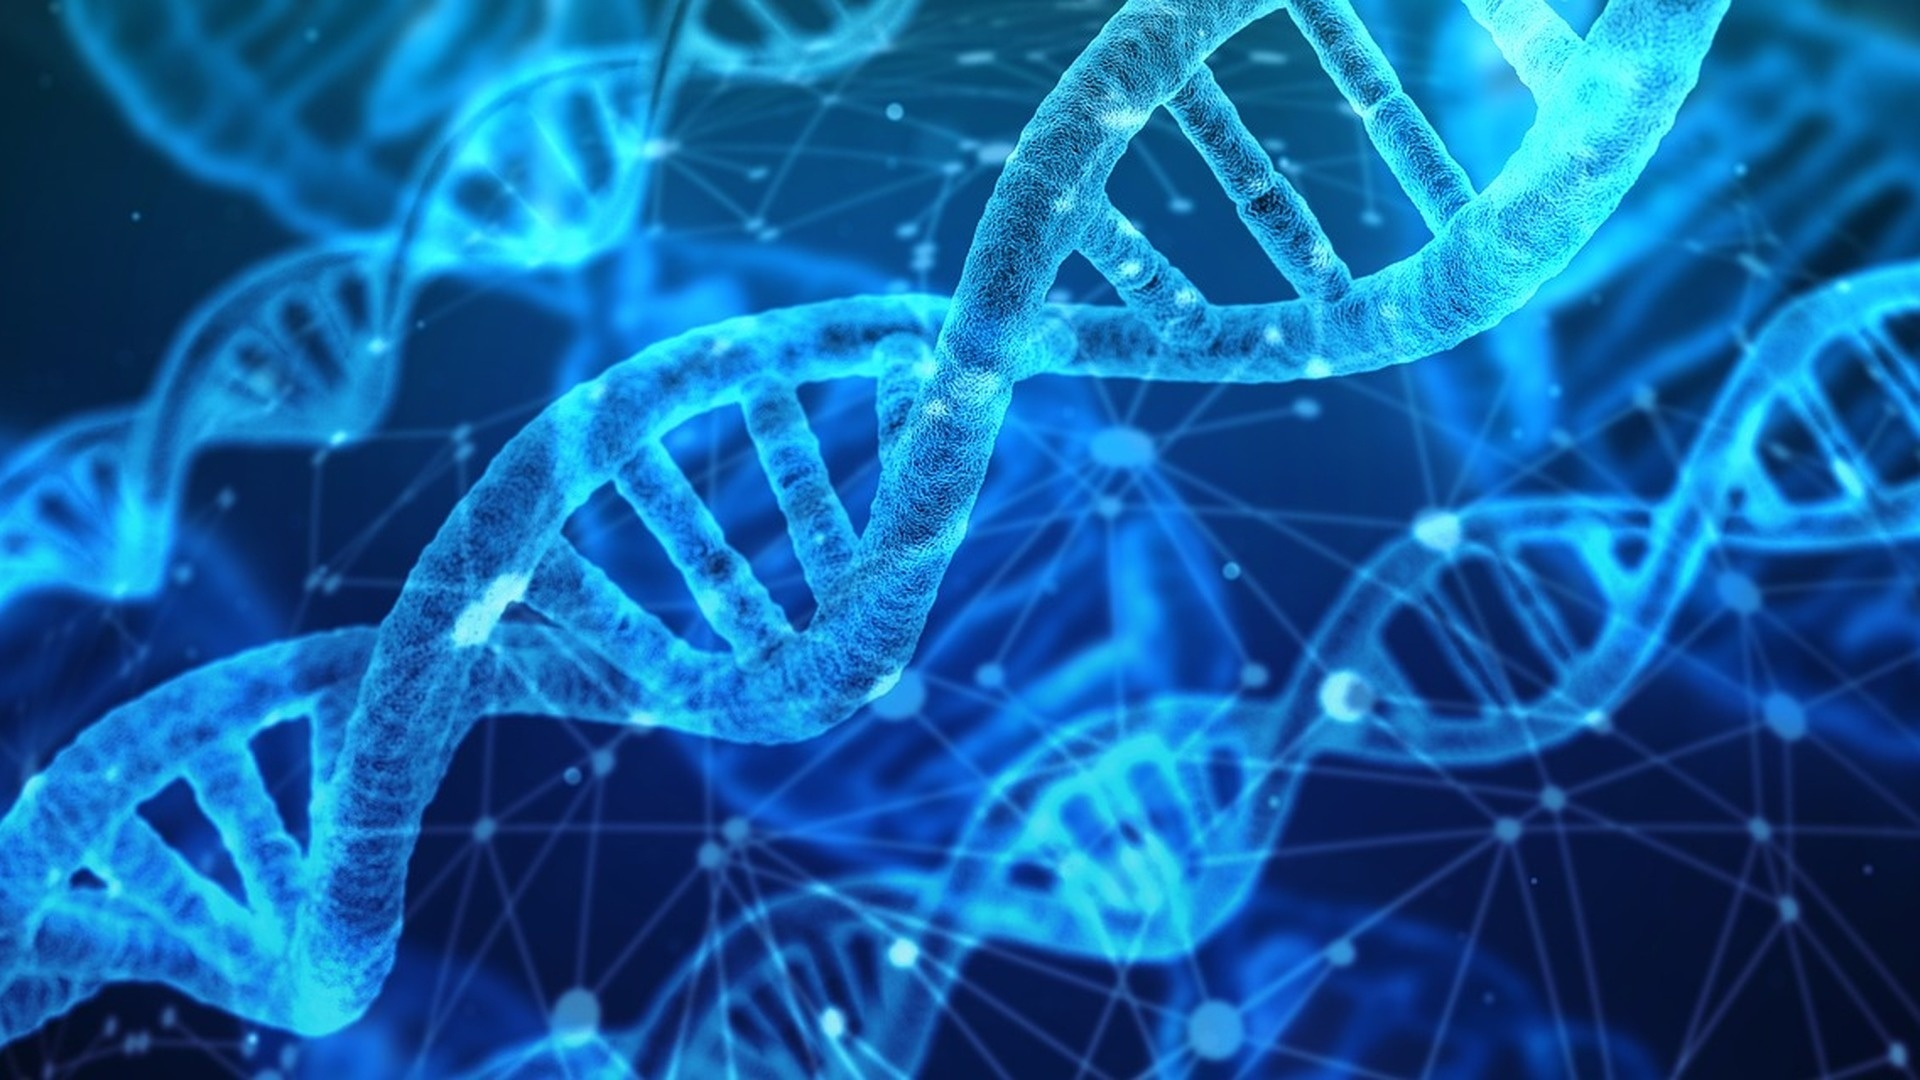 Dna wallpaper for computer